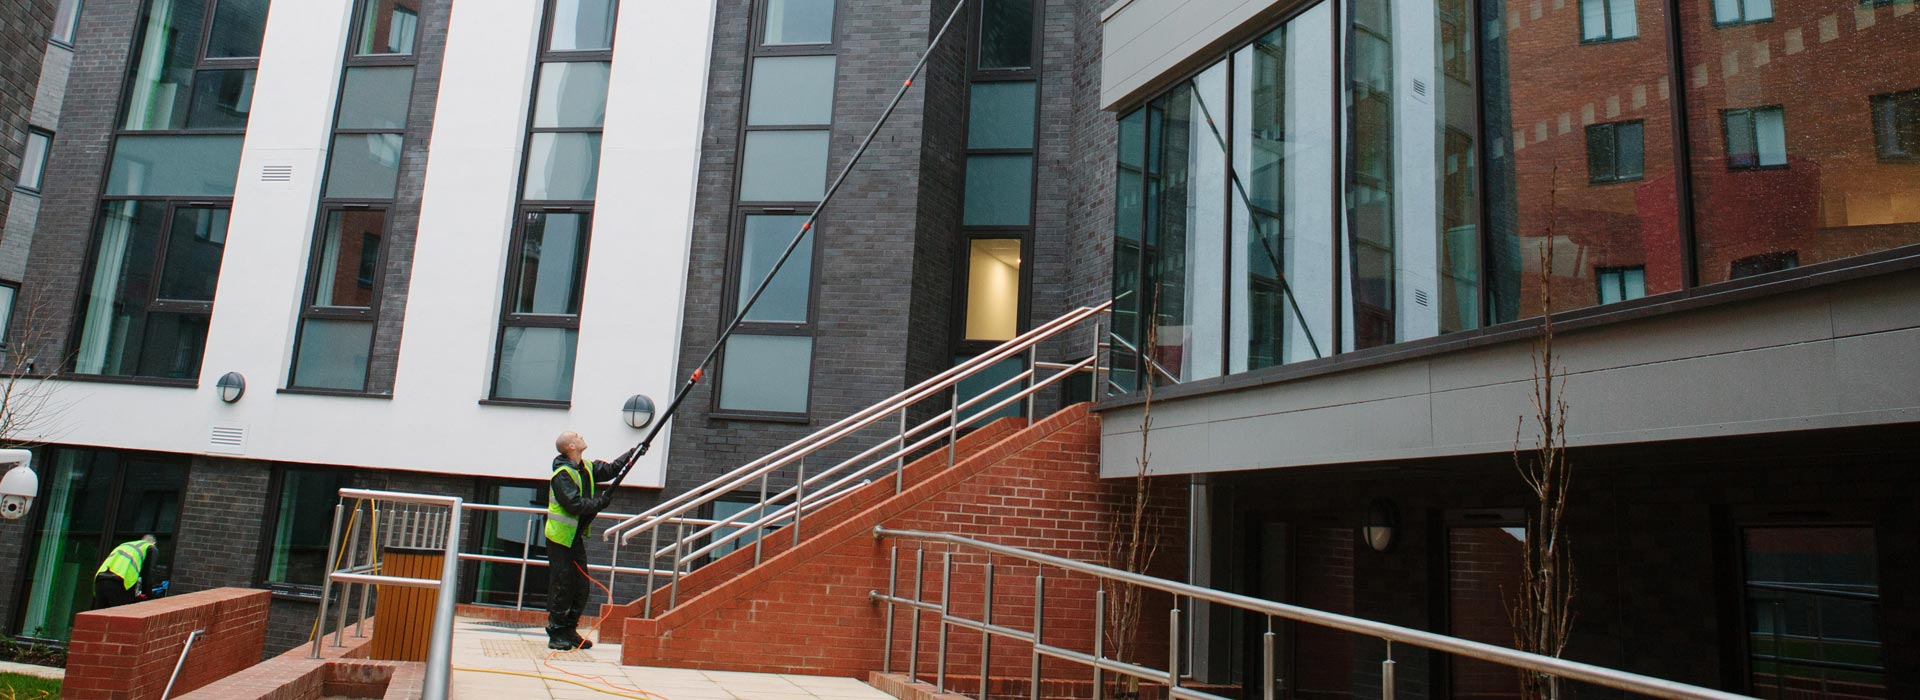 Ladderless Reach & Wash Window Cleaning Services in Manchester and the North West - HCS Cleaning Services